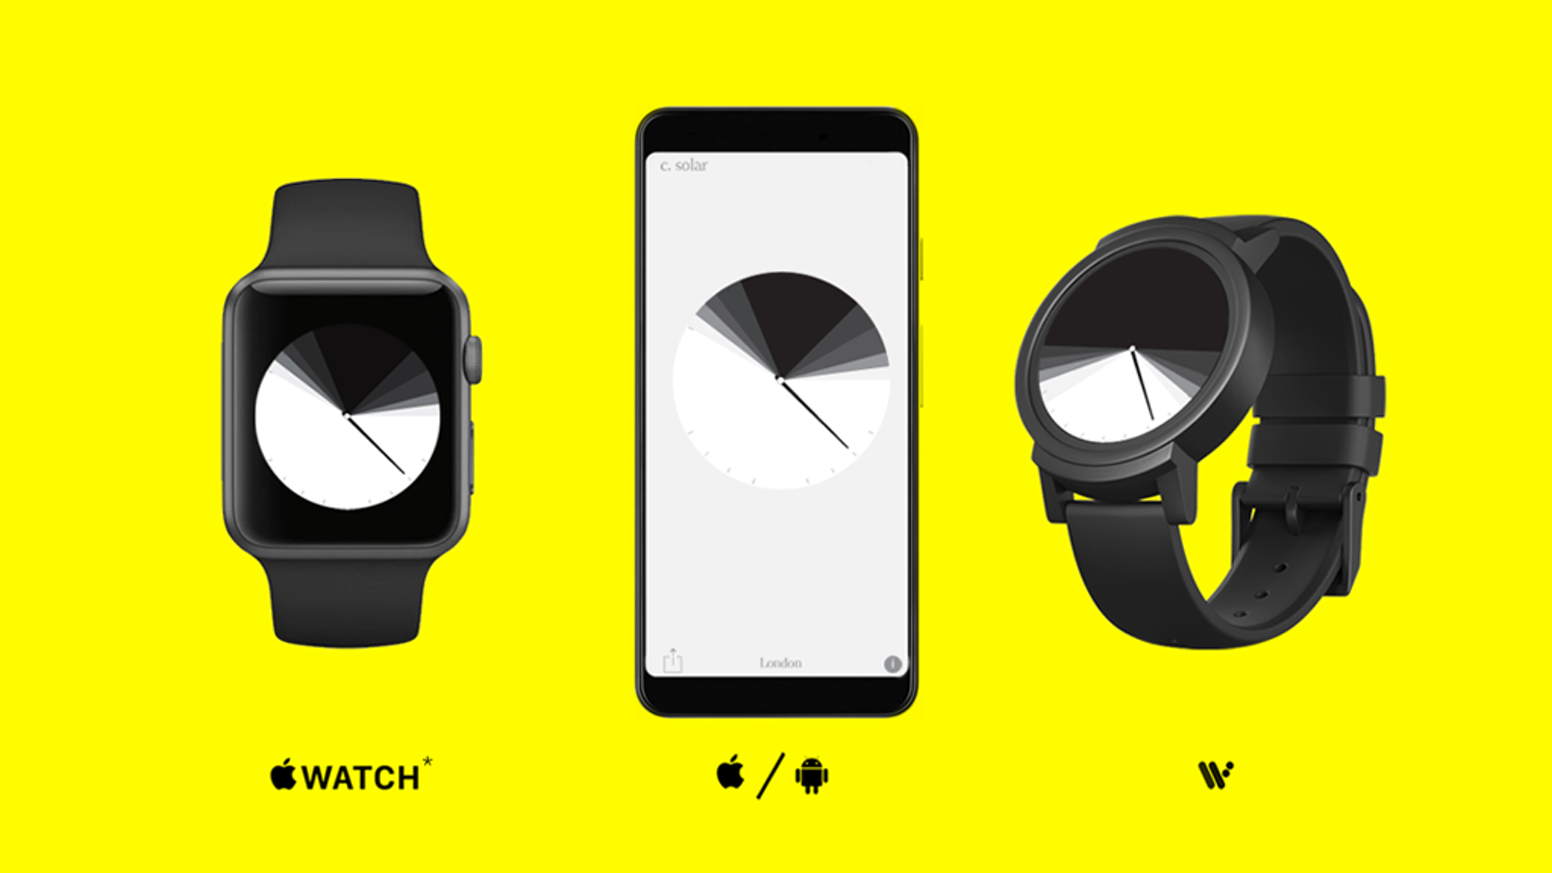 A radical new cross-platform time-telling app designed for smartwatch and phone.